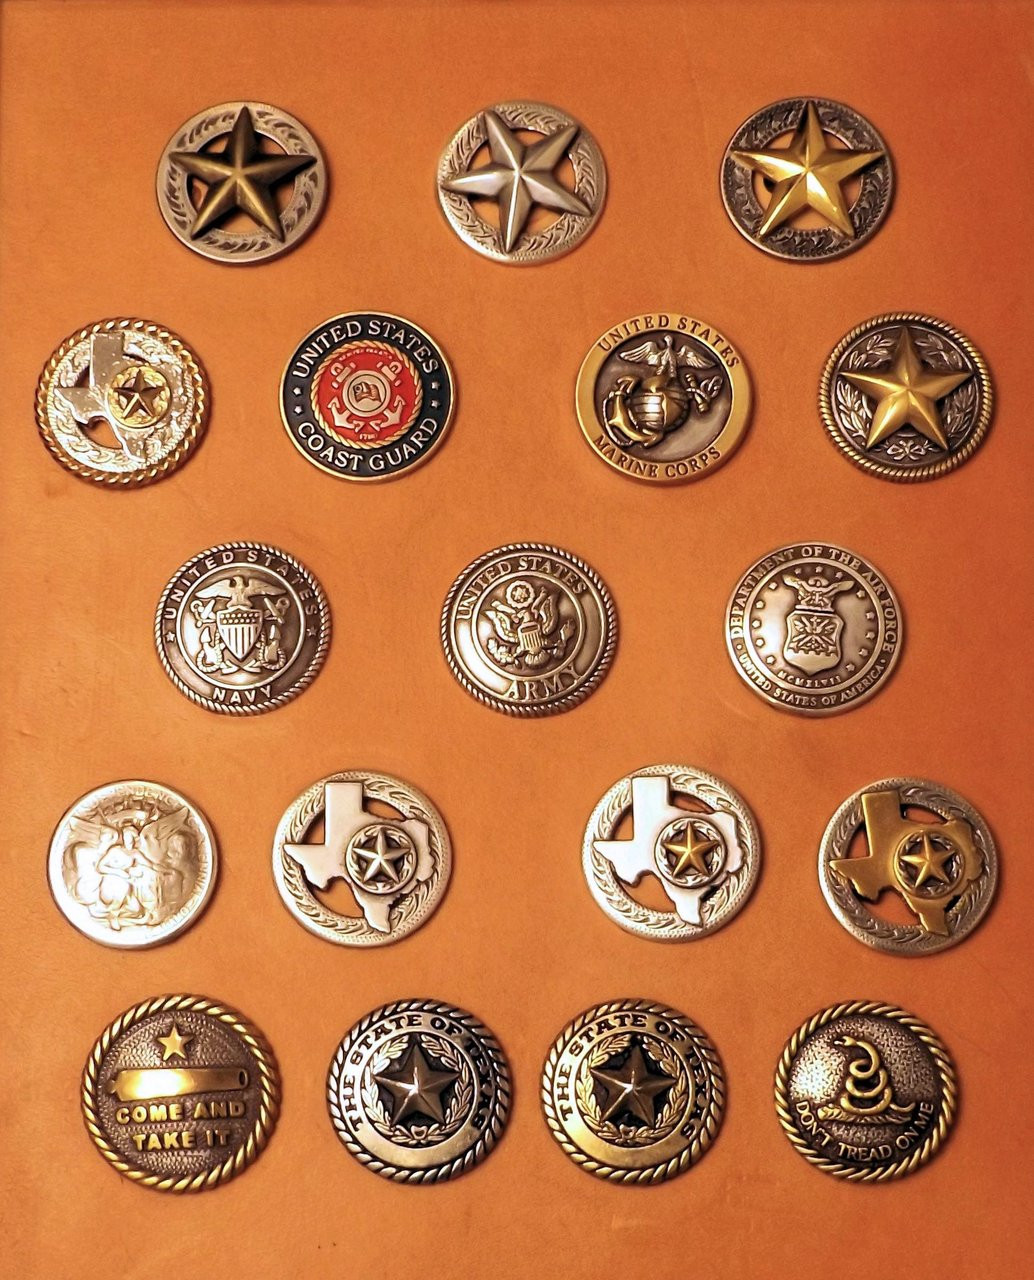 Some of the concho options